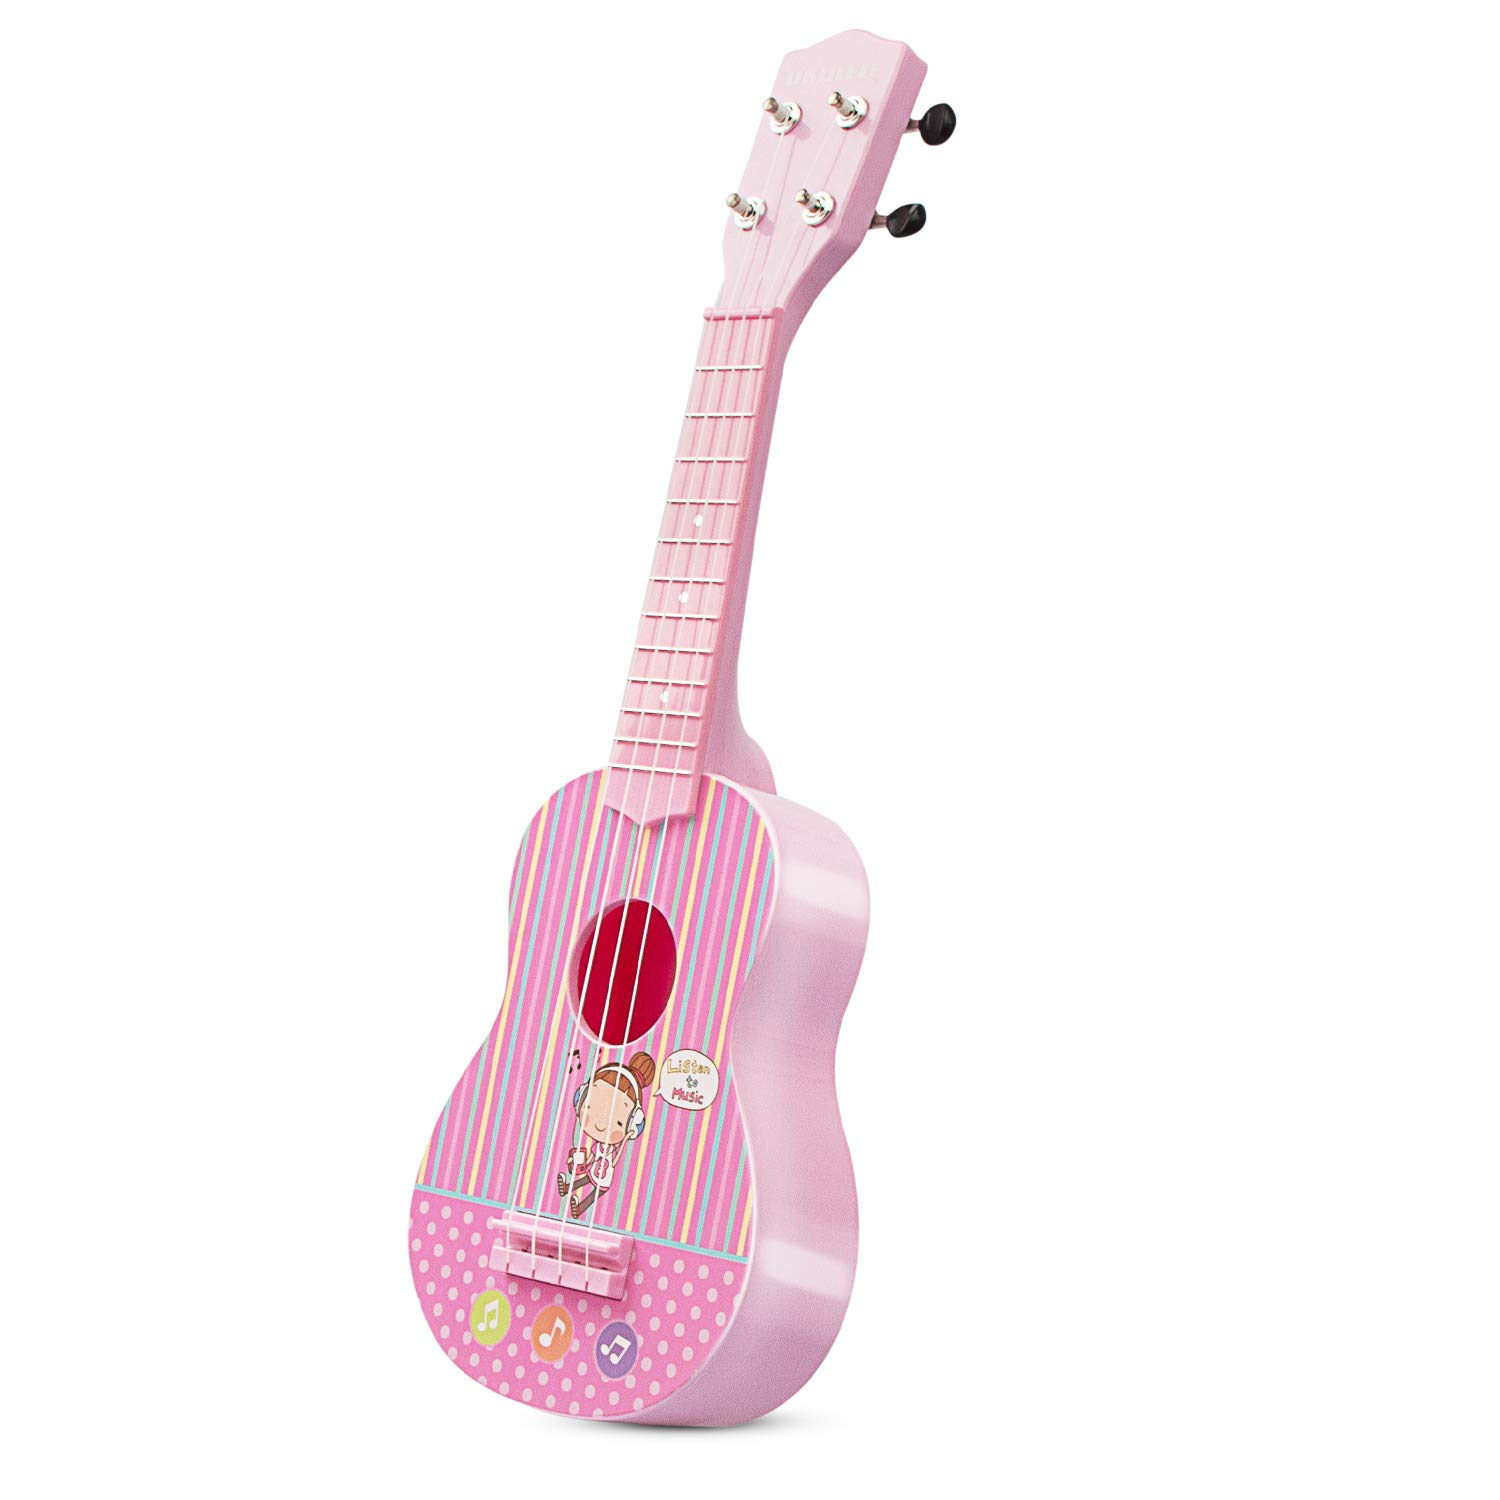 aPerfectLife 21'' Kids Ukulele Guitar Toy 4 Strings Mini Guitar Children Musical Instruments Educational Learning Toys with Picks and Strap for Toddler Kids Boys Girls Beginner Starter (Pink)